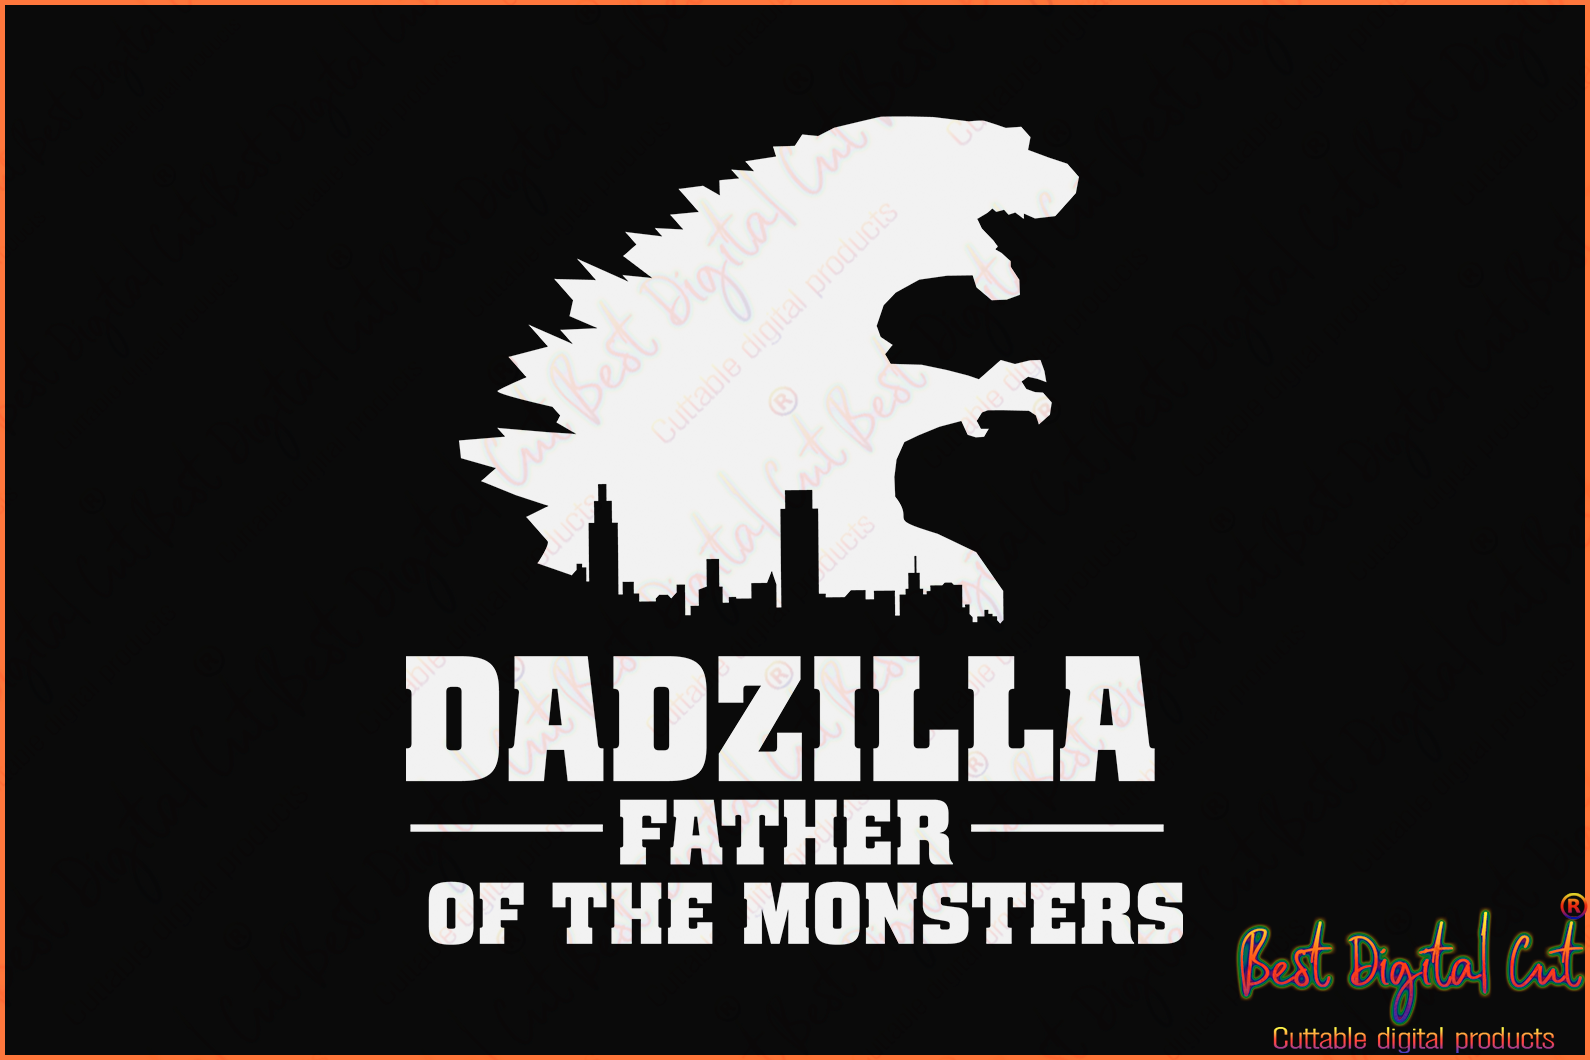 Dadzilla father of the monsters, grandfather svg, grandfather gift, grandad svg,gift for father,love father, monster svg, monster svg, monster shirt,  cute monster svg,lover monster,